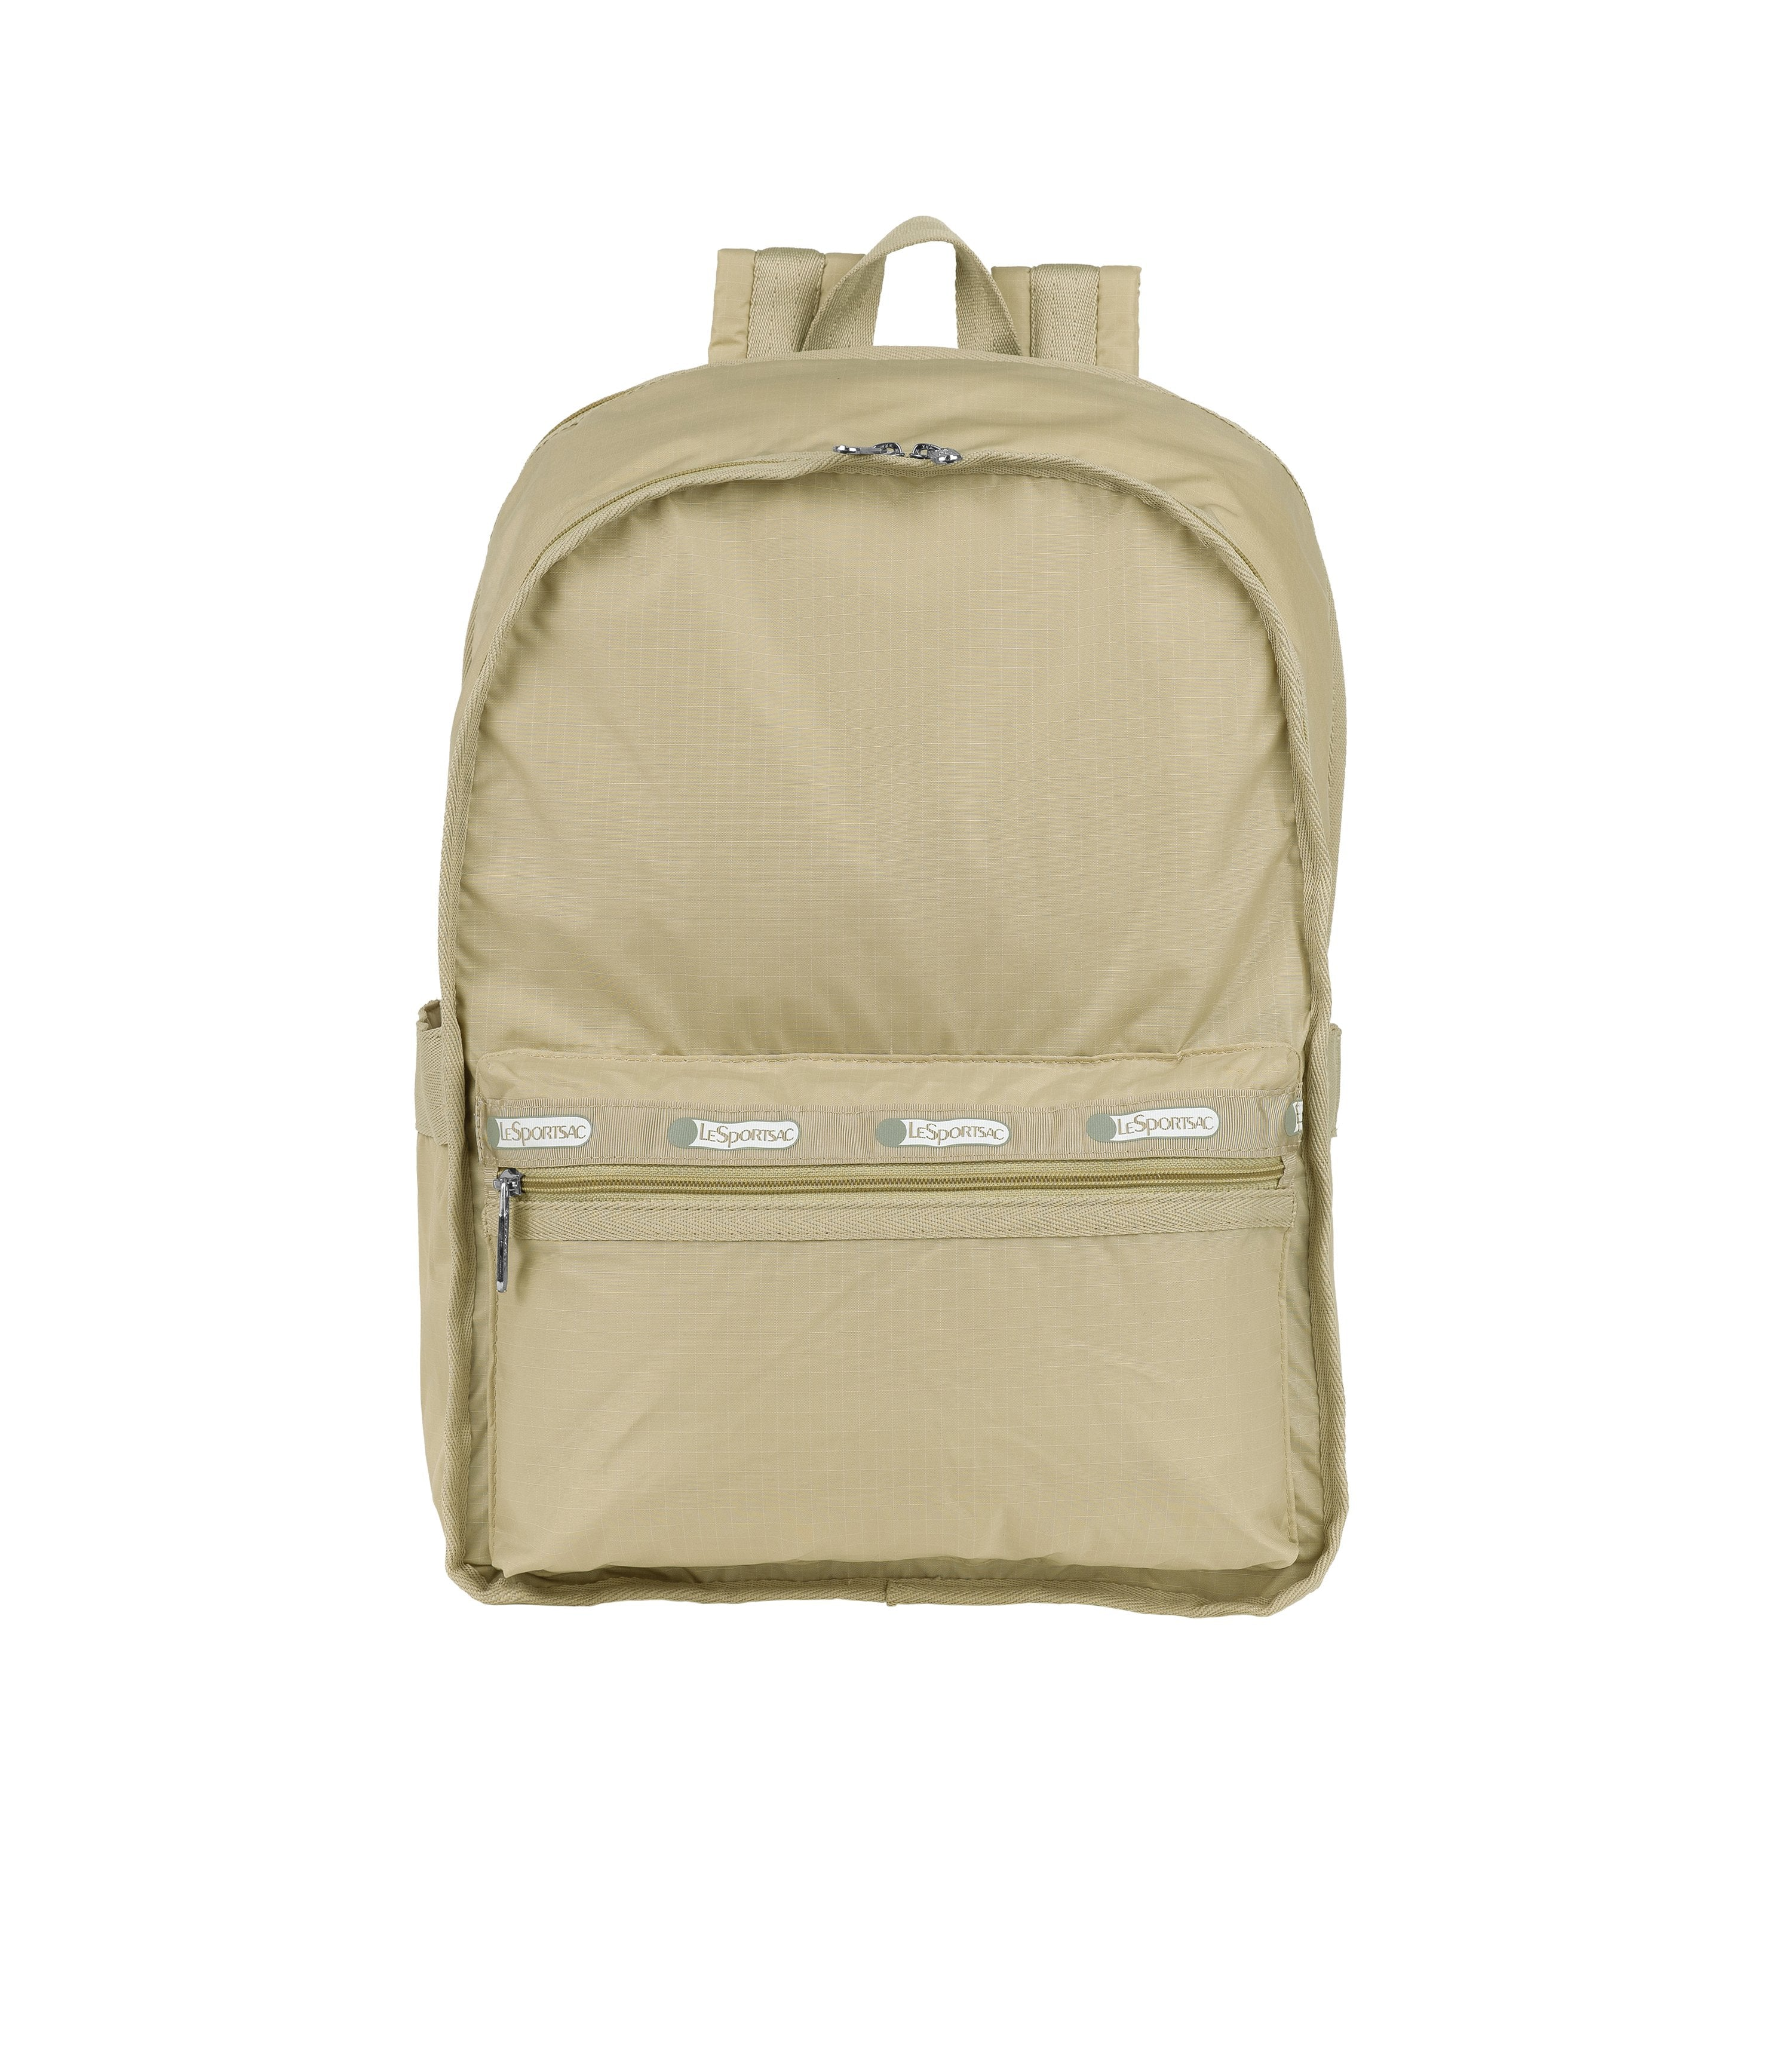 LeSportsac - Backpacks - Classic Large Backpack - Heritage Travertine